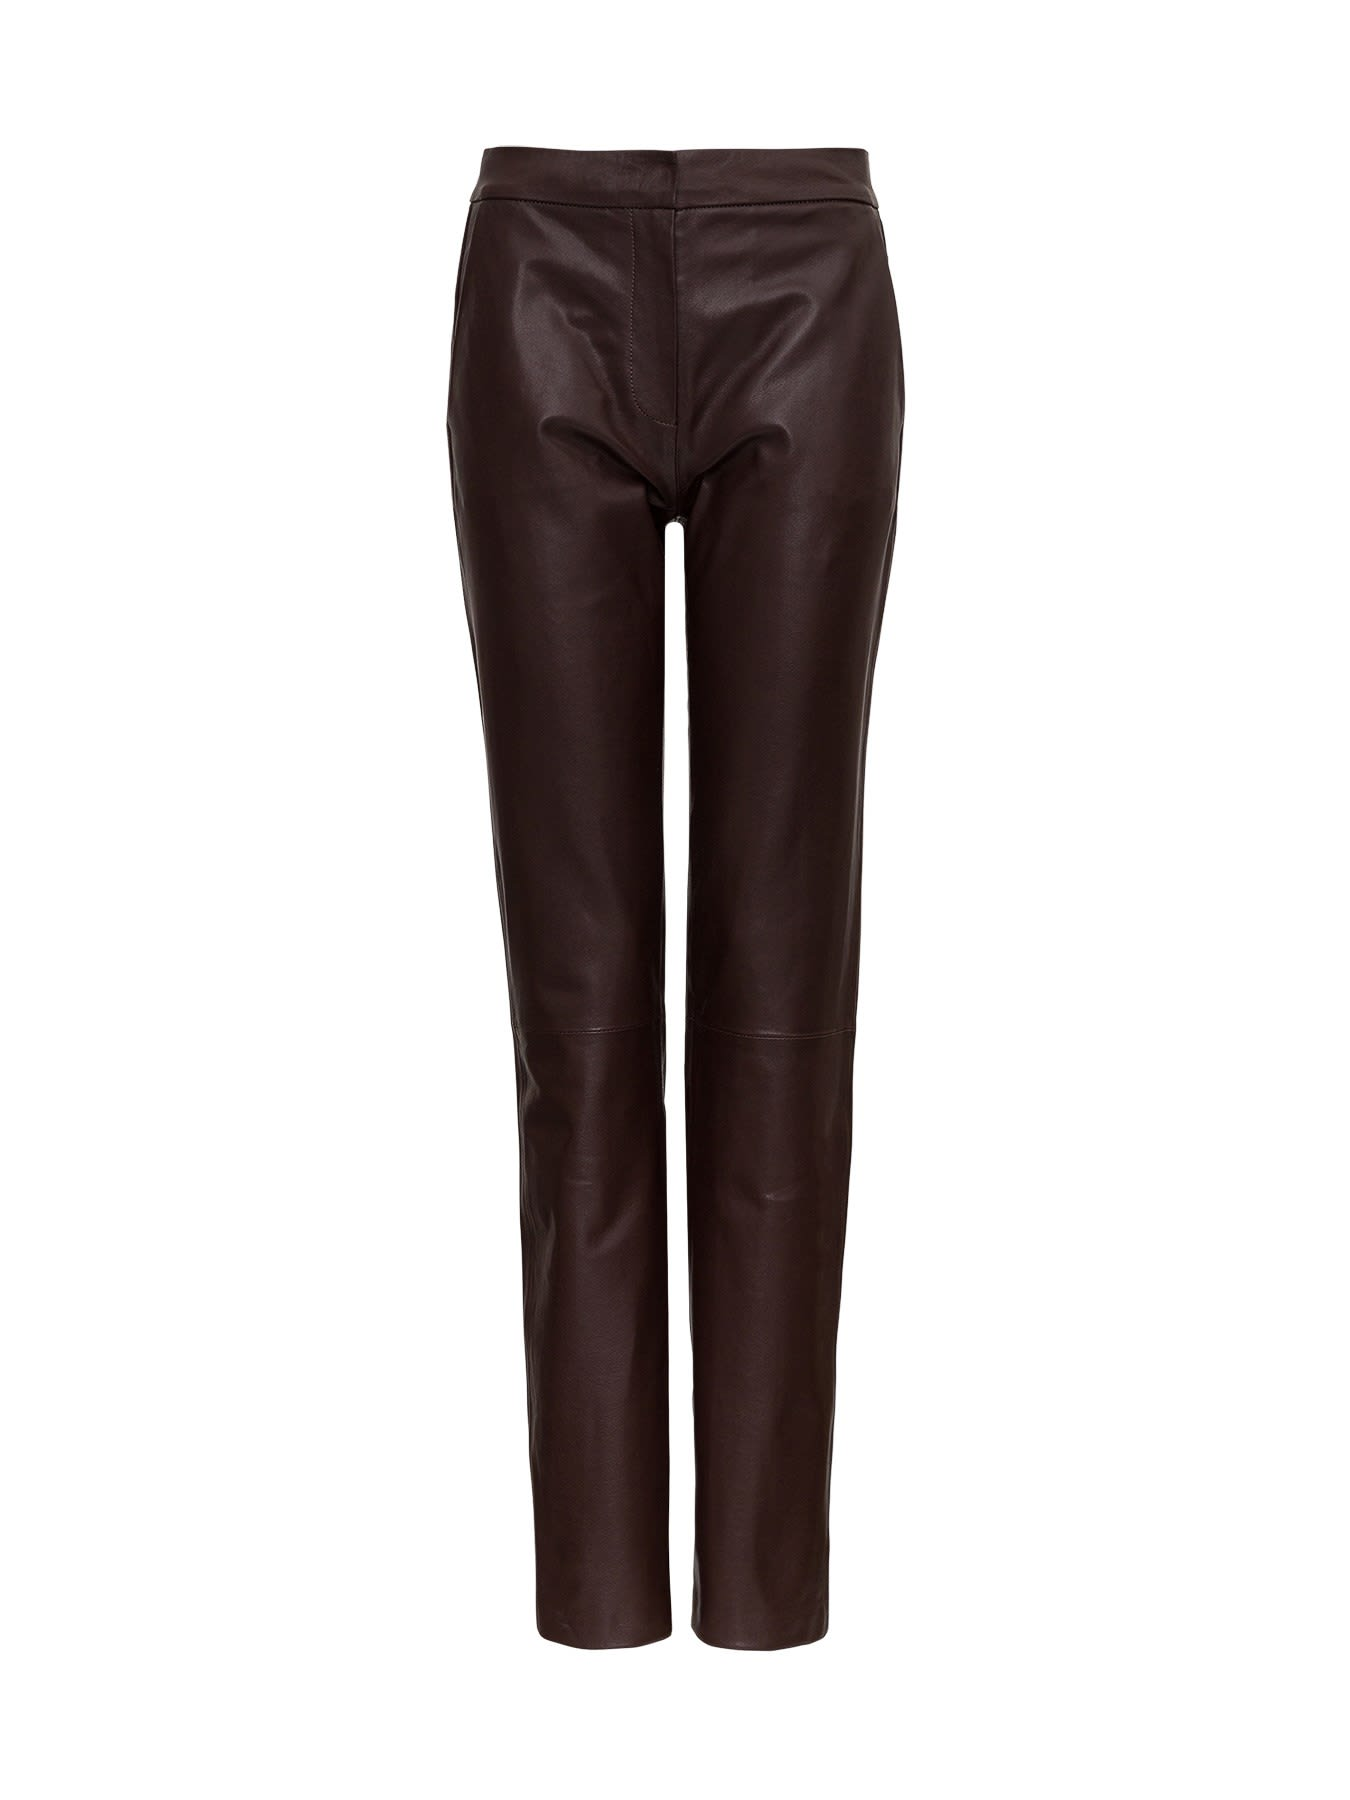 Federica Tosi LEATHER PANTS